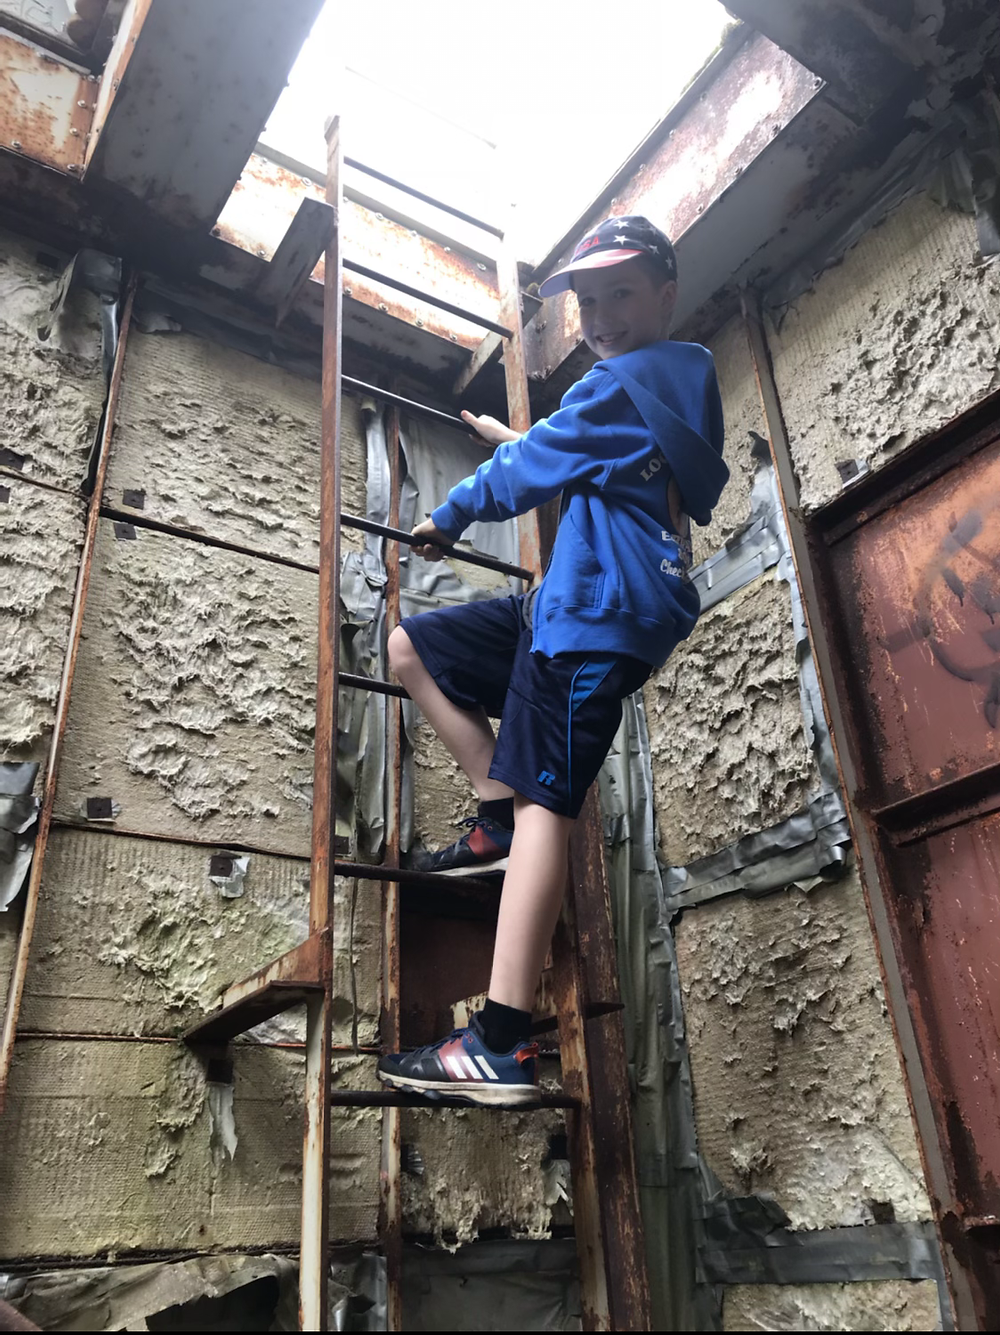 My son climbing up to the top of the tower a couple years ago